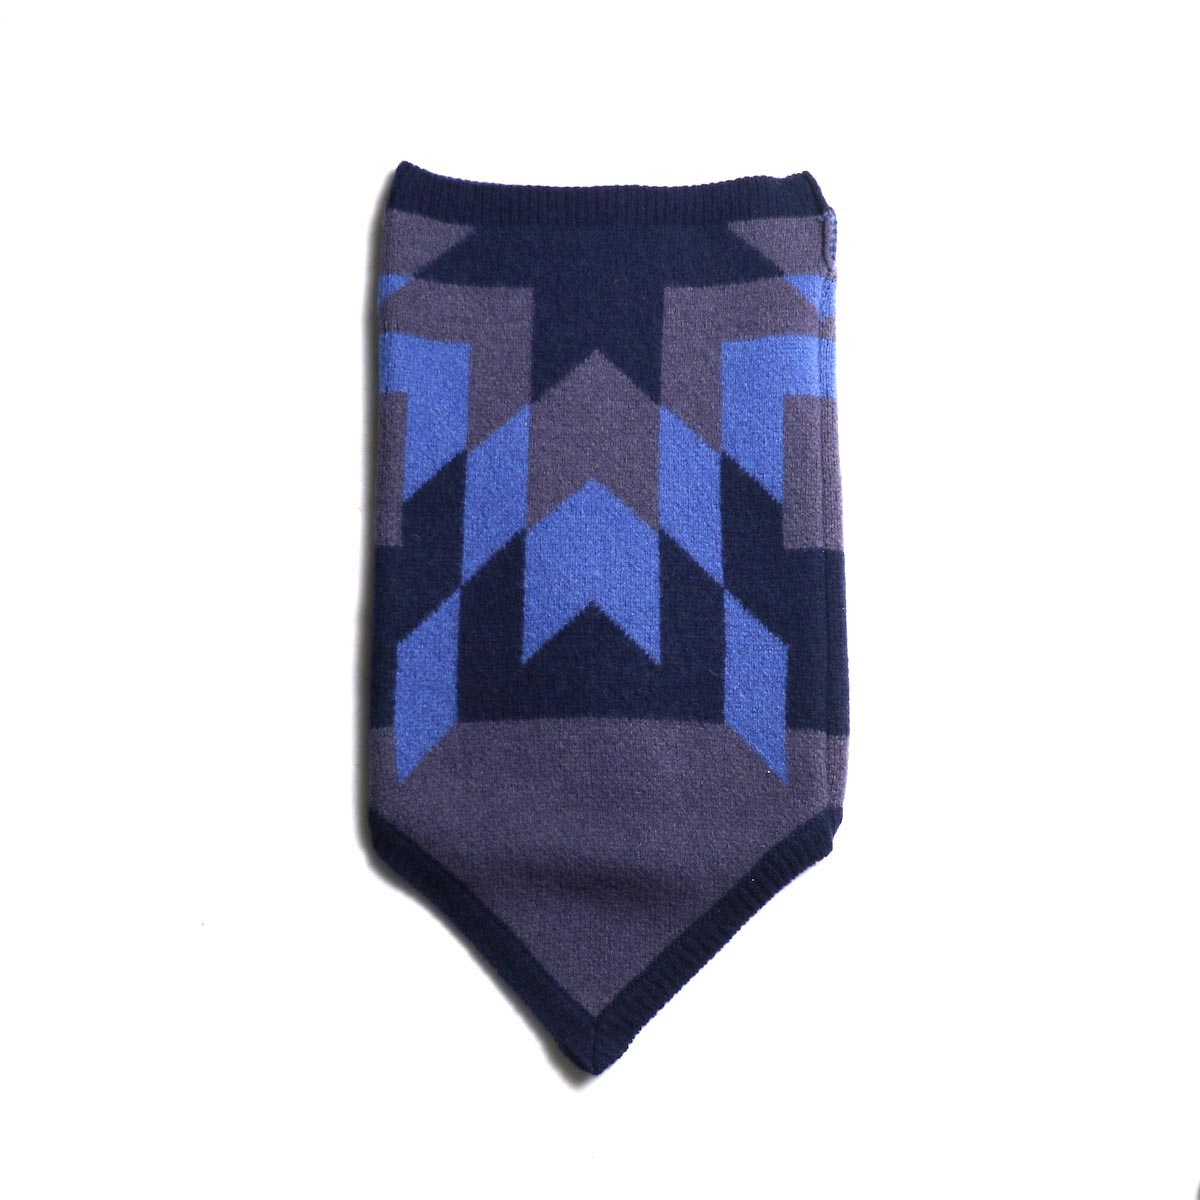 The Soloist / sk.0005AW19 neck warmer. -Mid Night × Eggplant × Saxe Blue